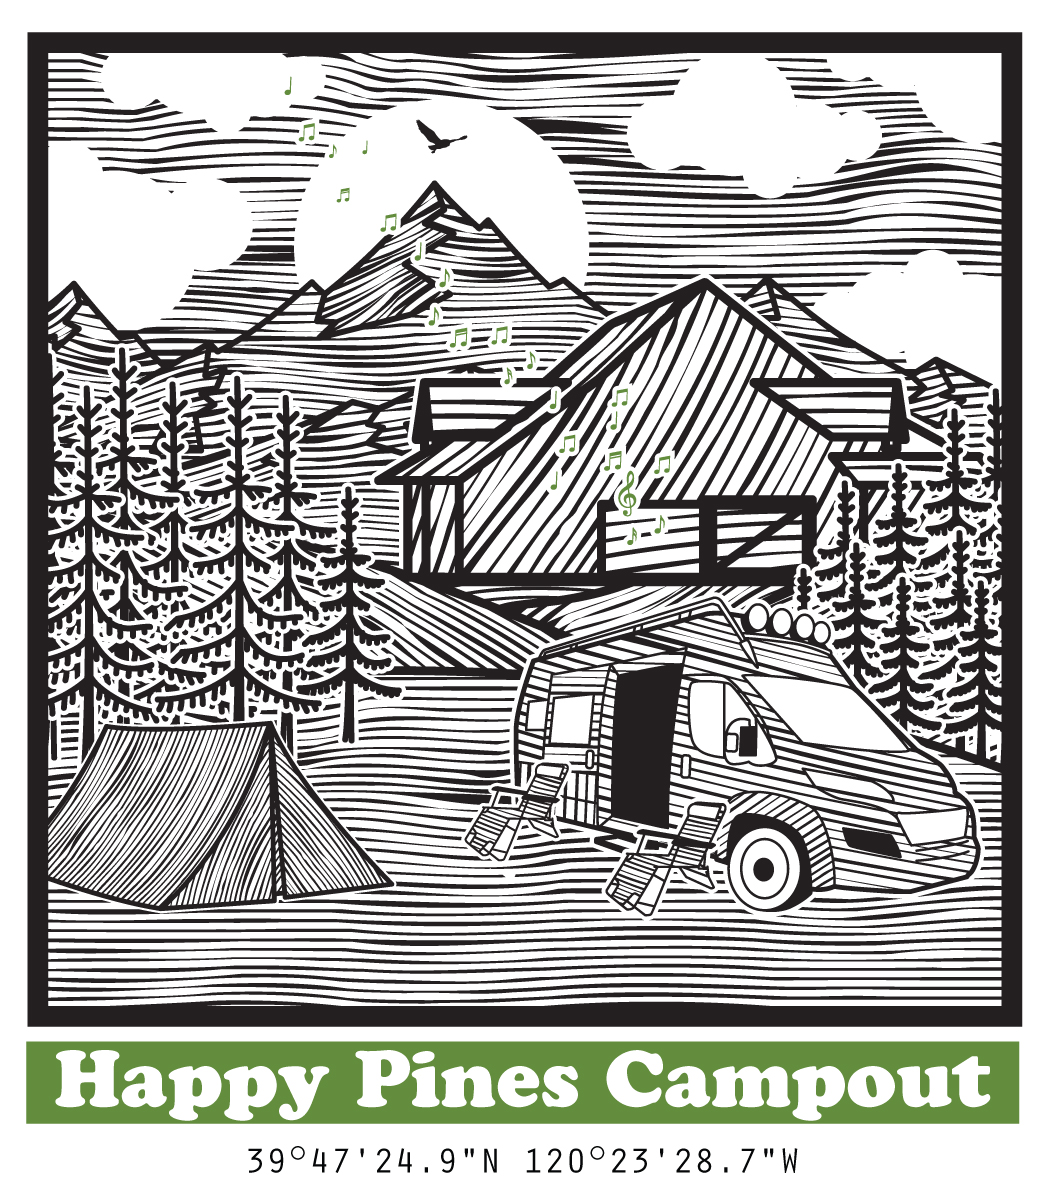 Happy Pines Campout Sierra Valley Basecamp